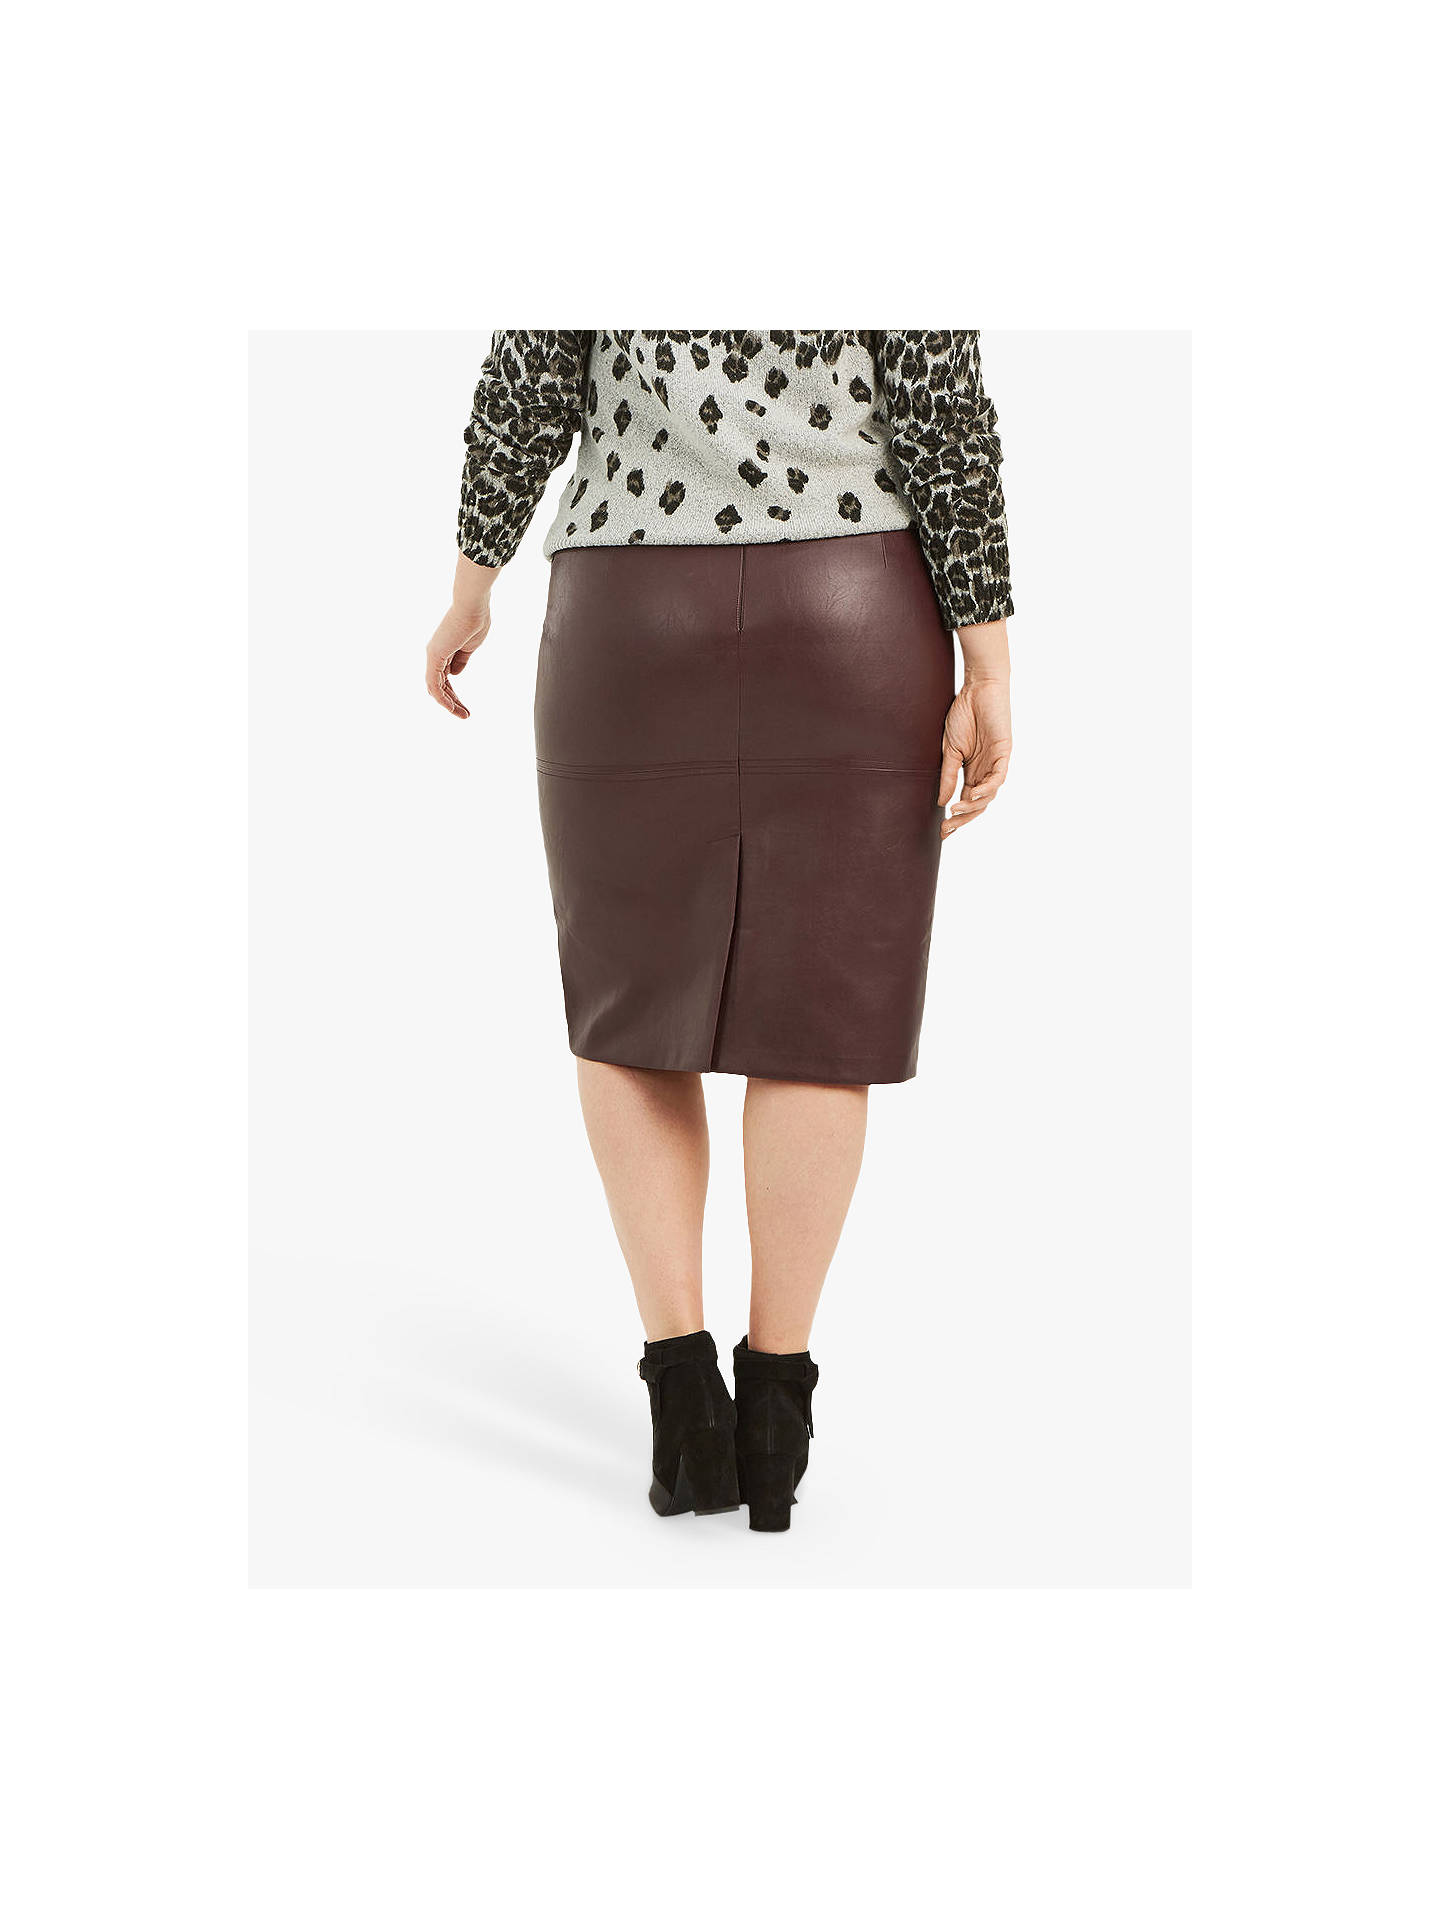 8bd69c657a ... Buy Oasis Curve Faux Leather Pencil Skirt, Burgundy, 18 Online at  johnlewis.com ...